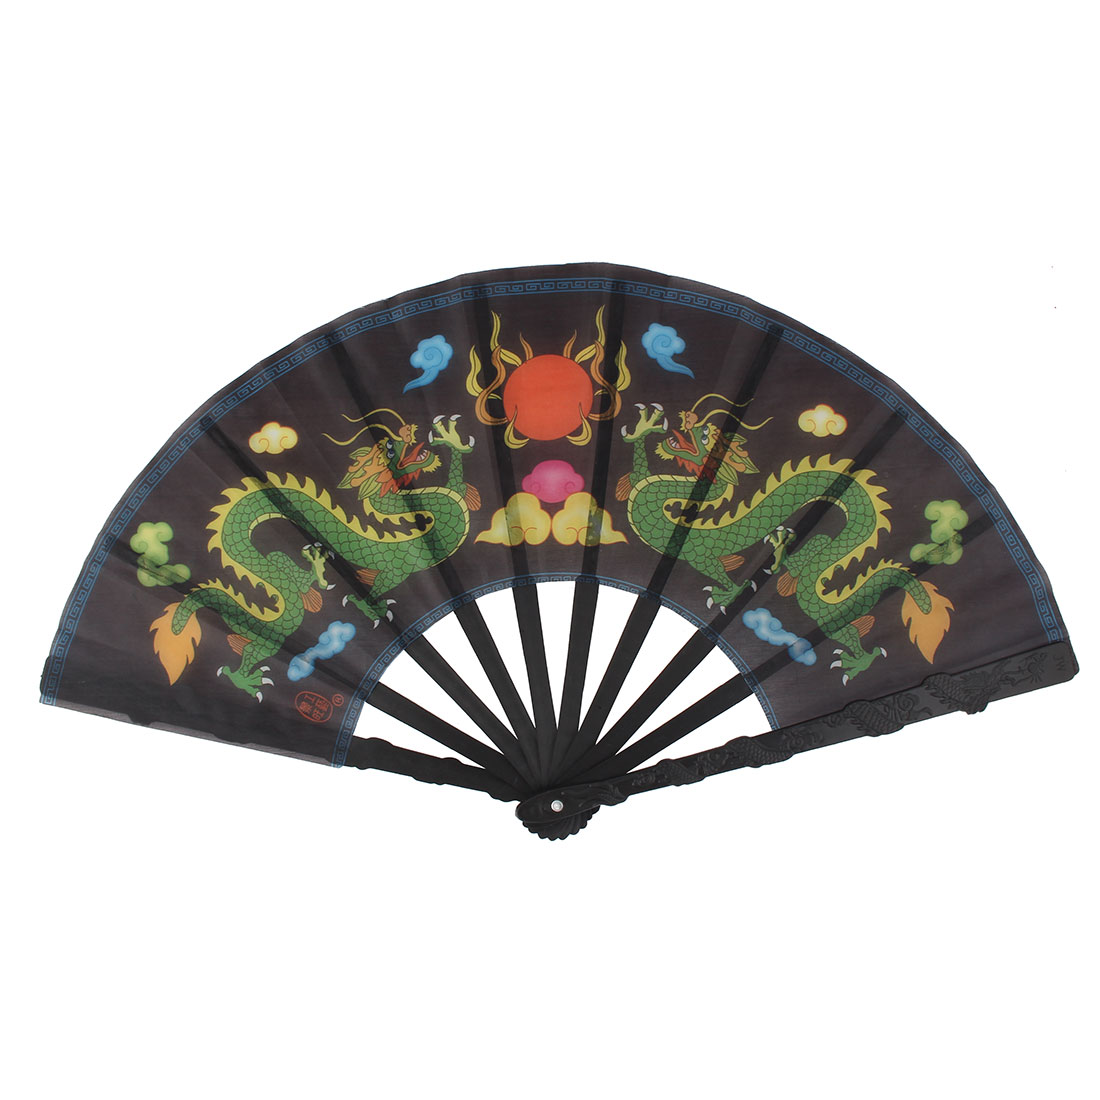 Summer Plastic Frame Dragon Pattern Folding Handheld Hand Fan Hand-crafted